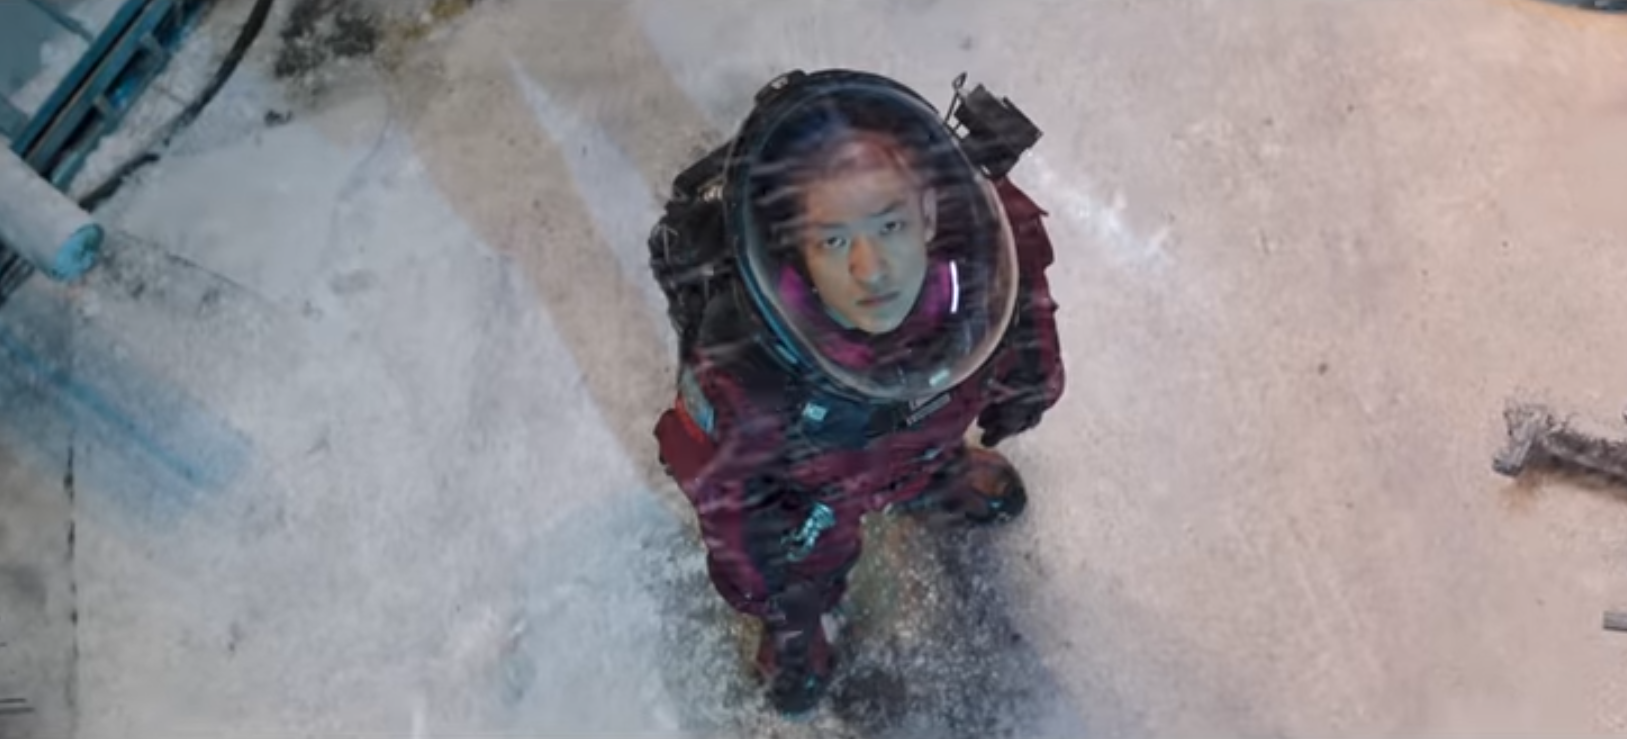 The Wandering Earth Netflix Chinese movie sci-fi